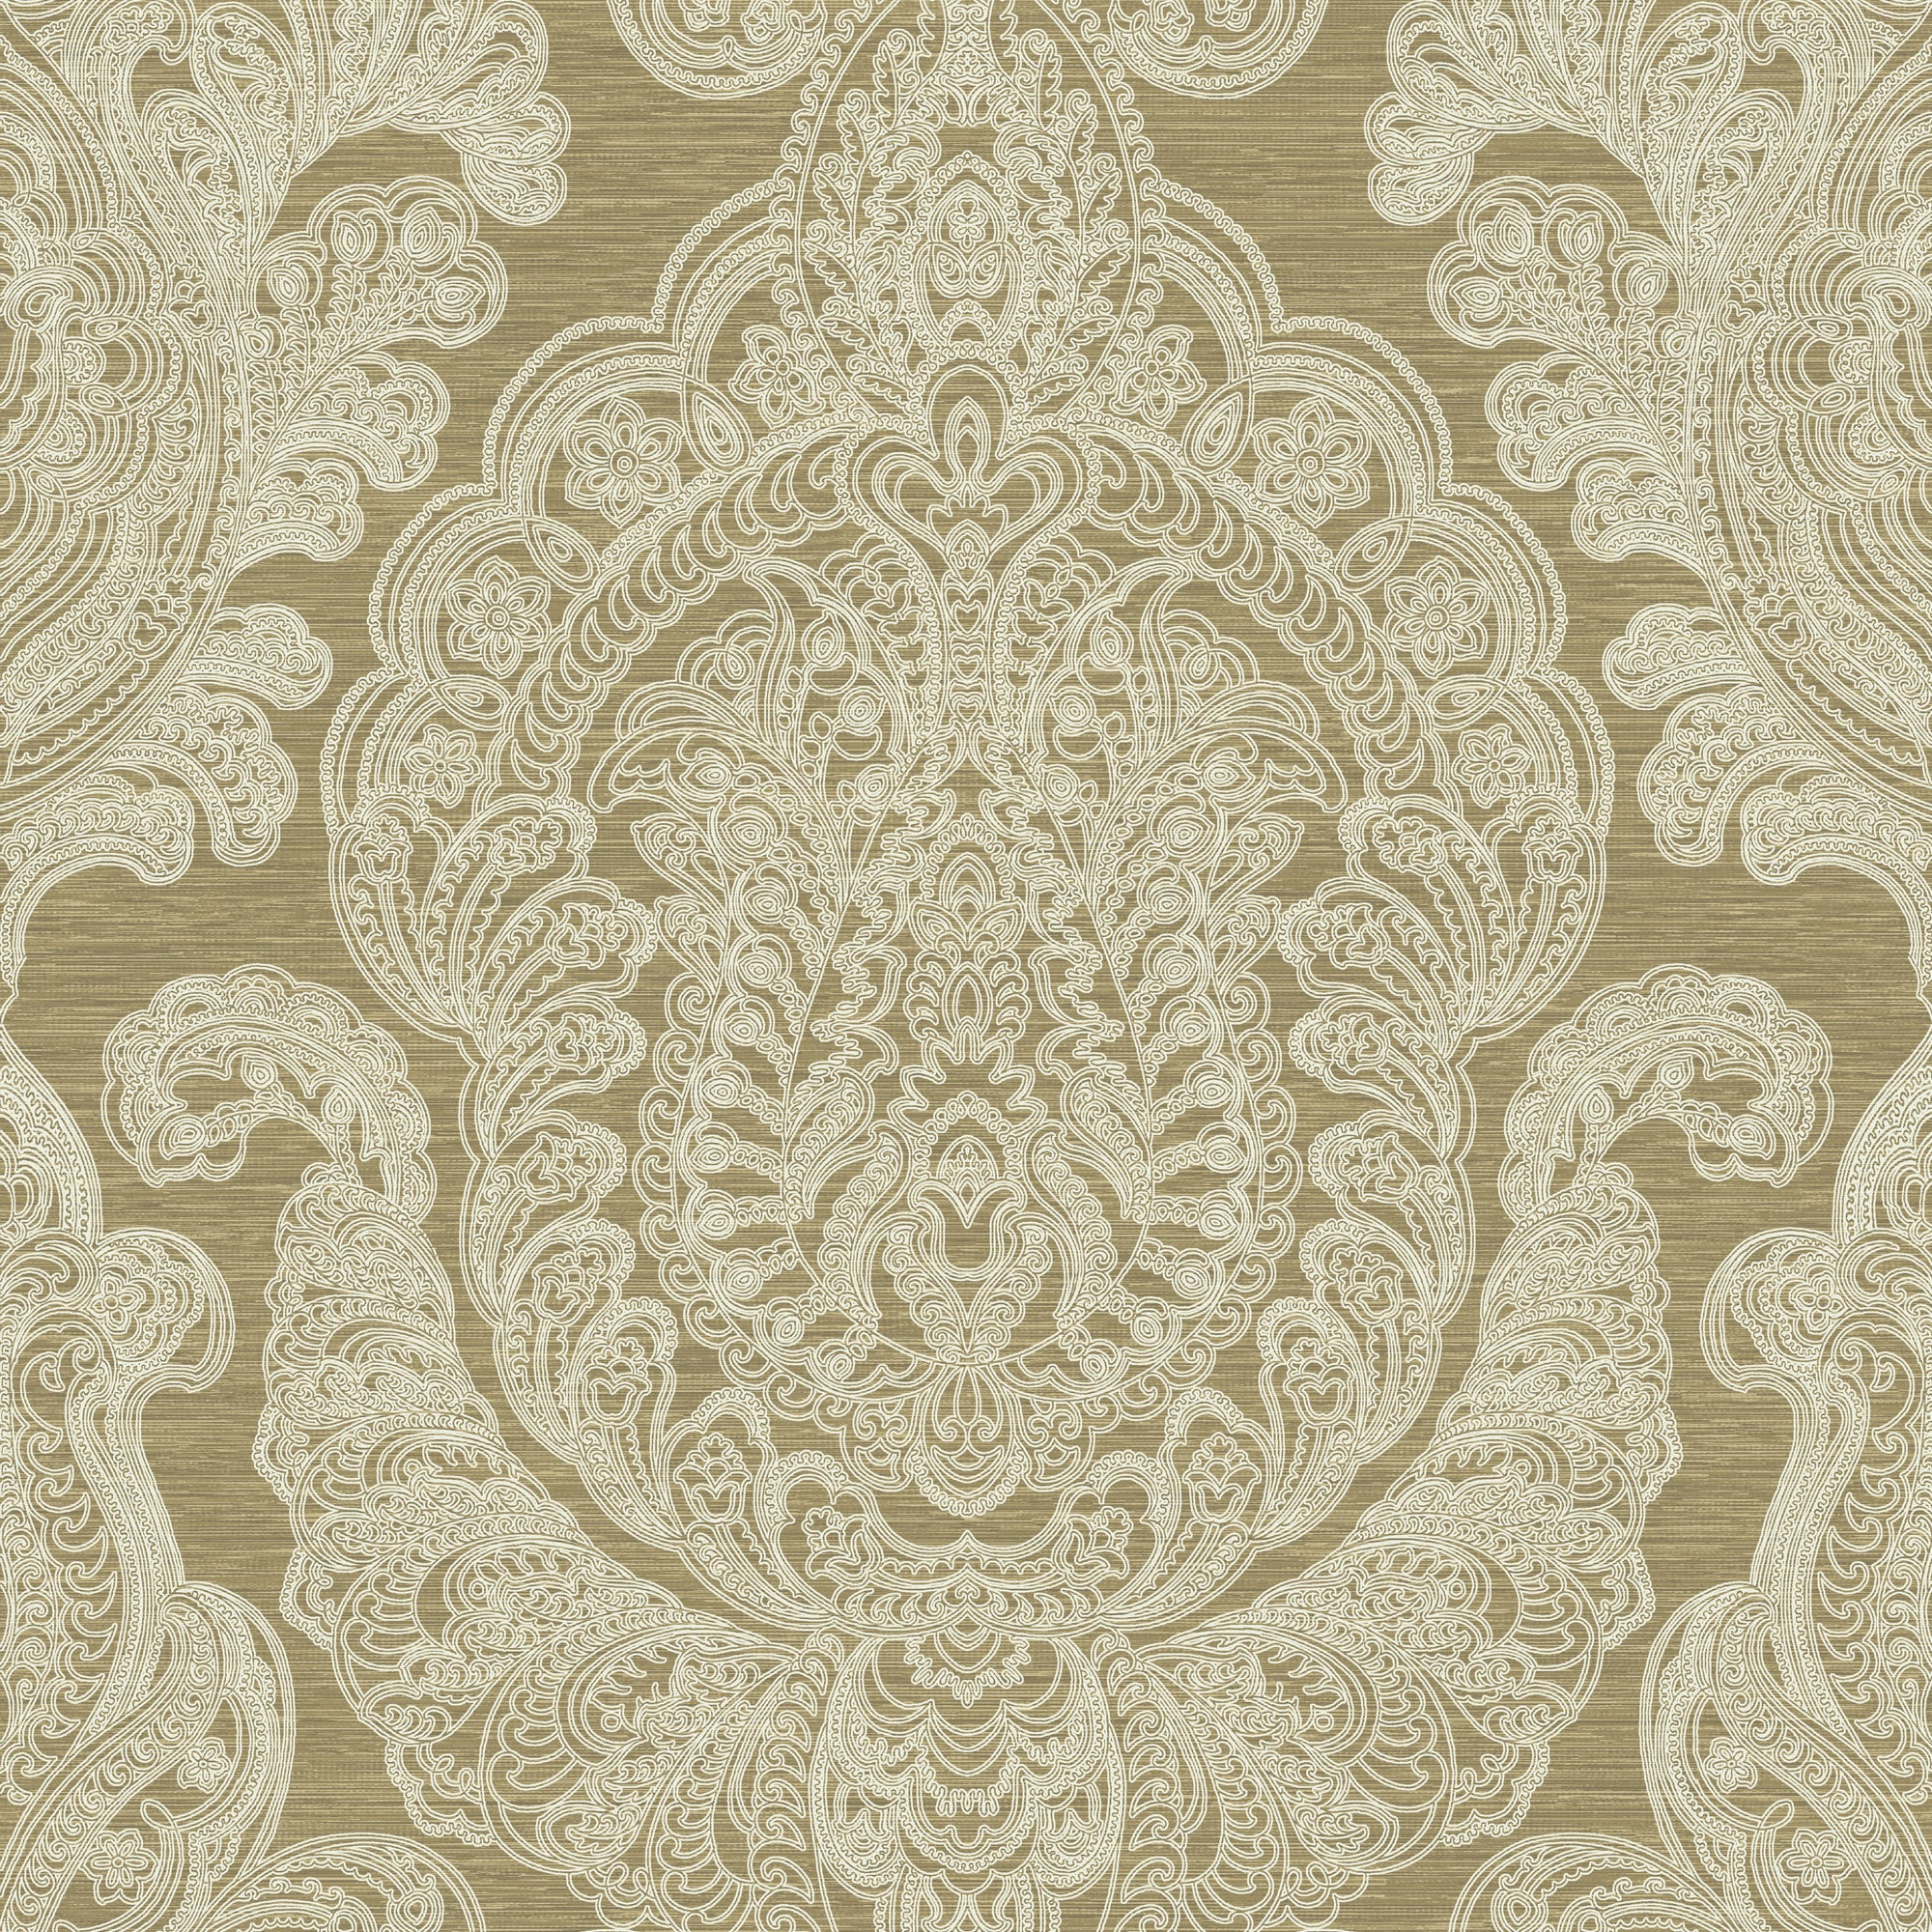 Damask In White And Gold, 8192 19